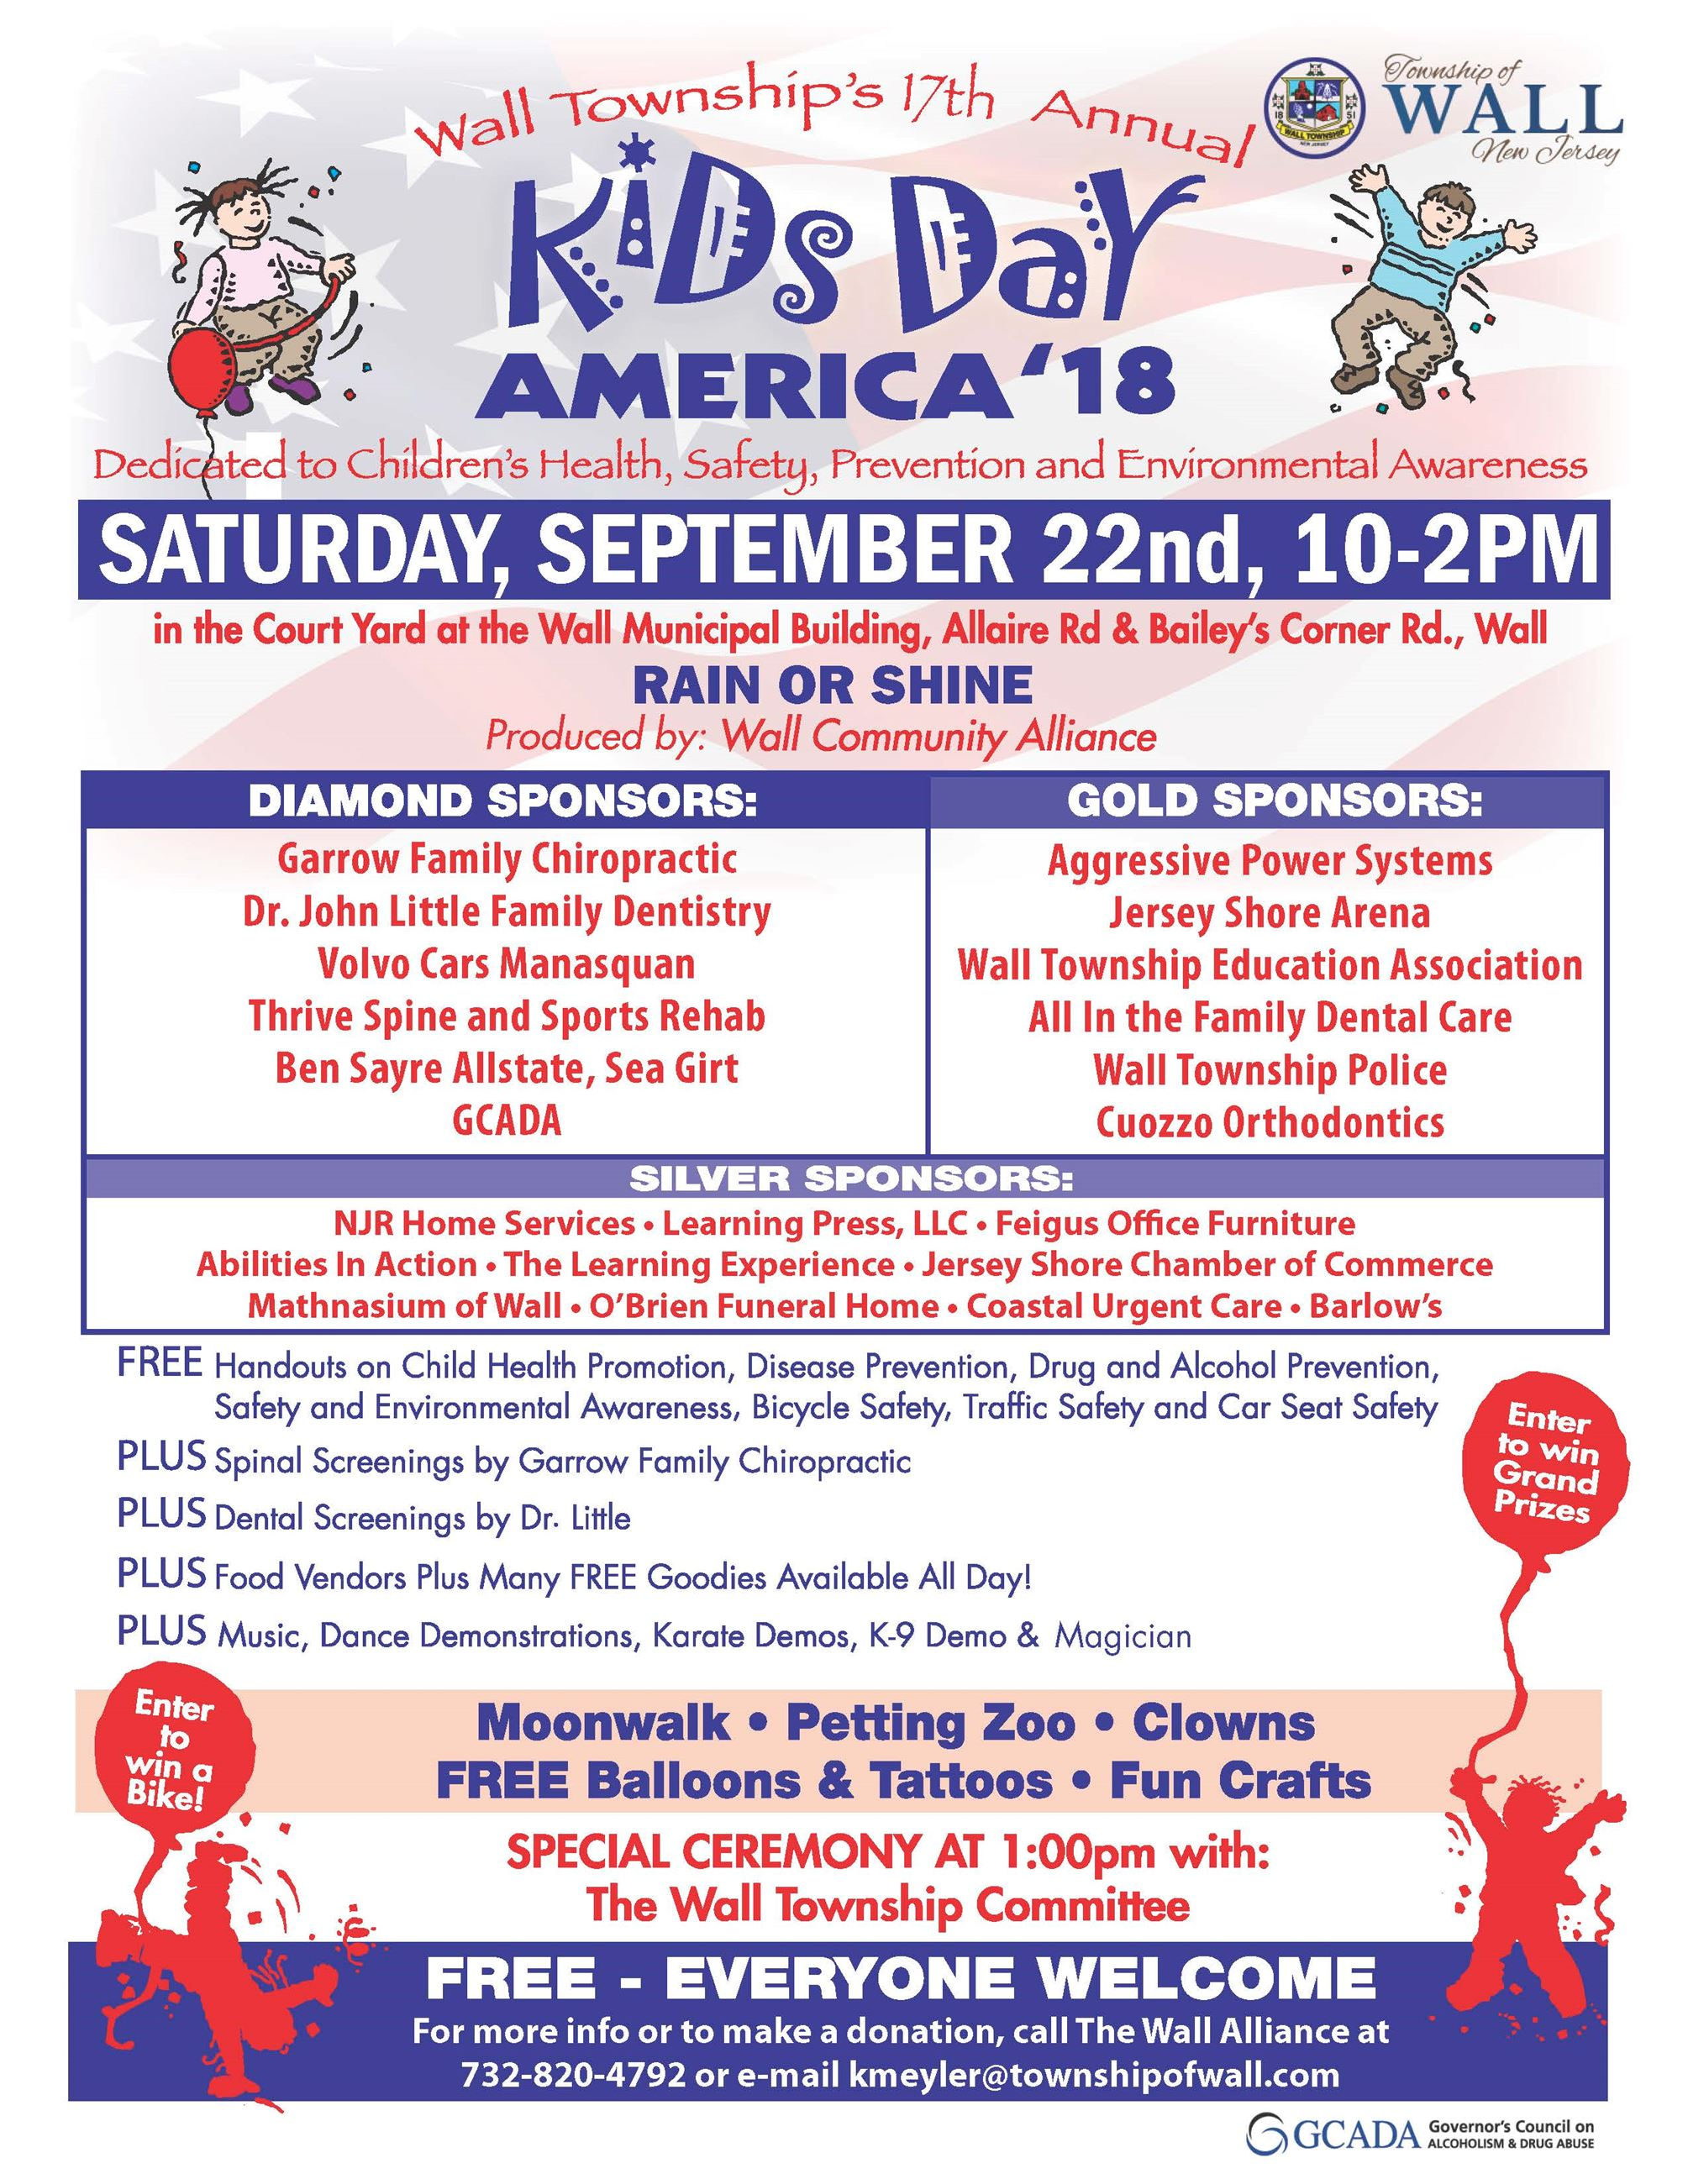 Wall Alliance 2018 Kids Day America - full page